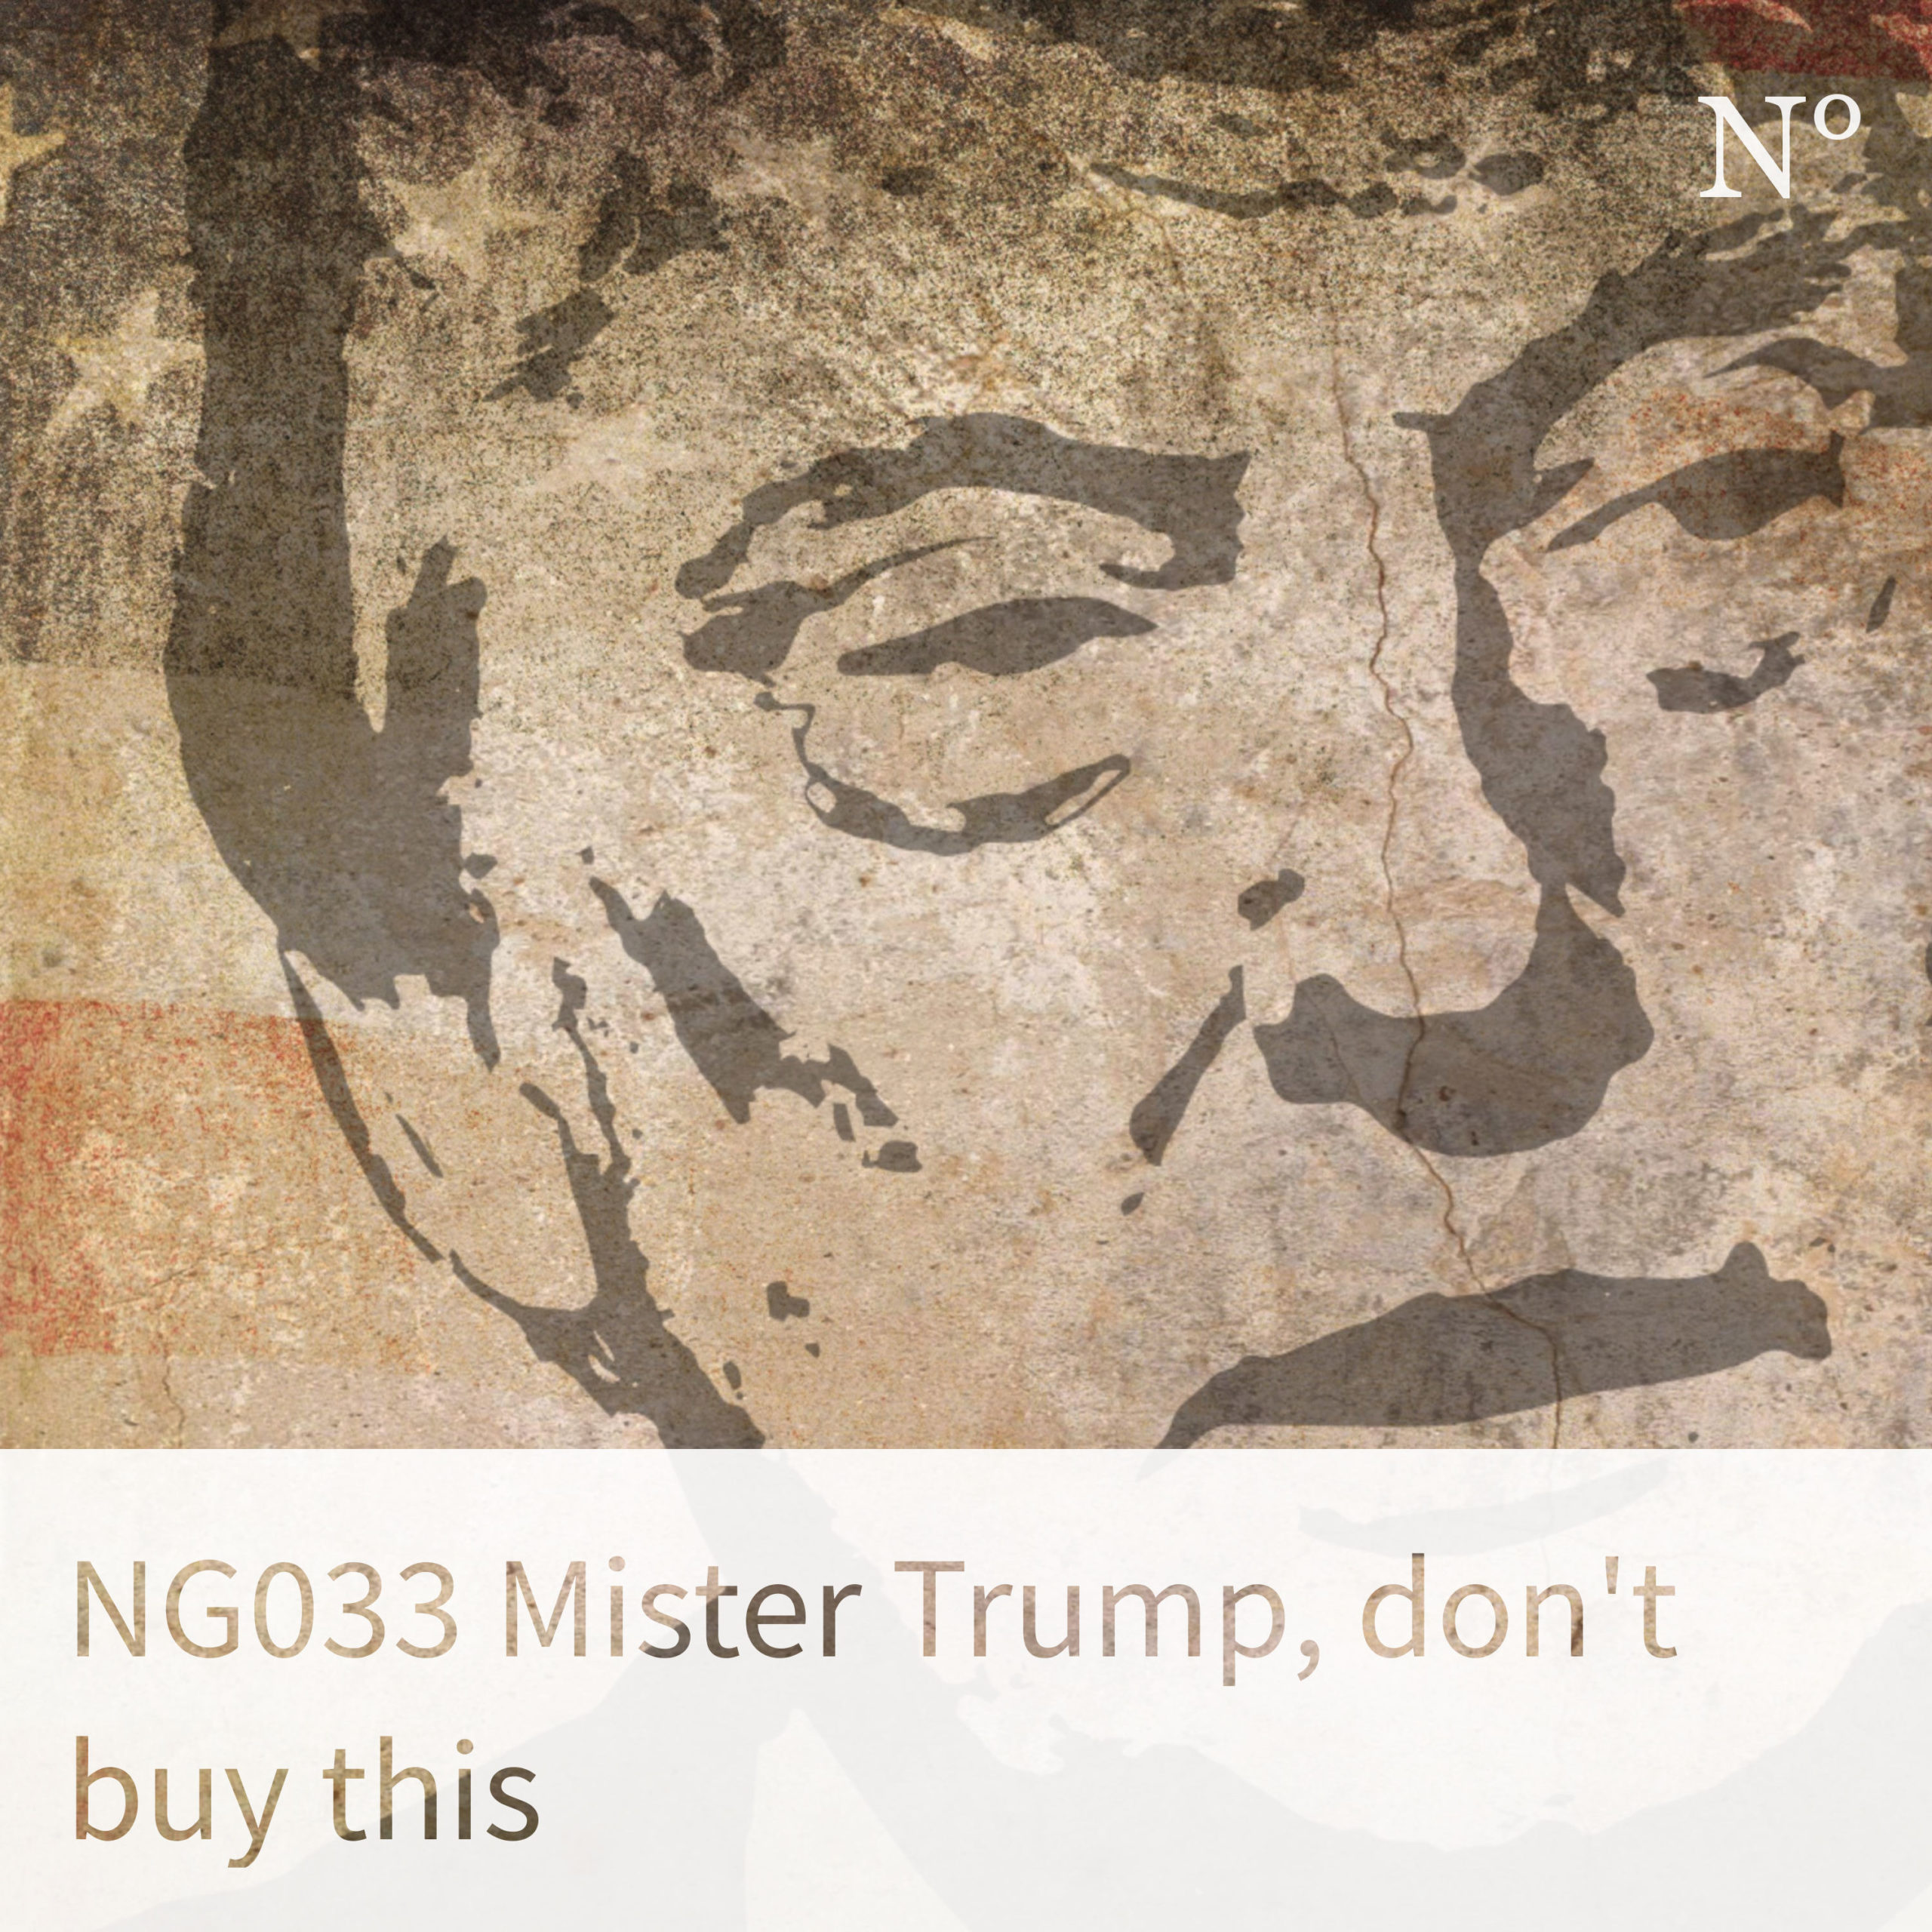 NG033 Mister Trump, don't buy this